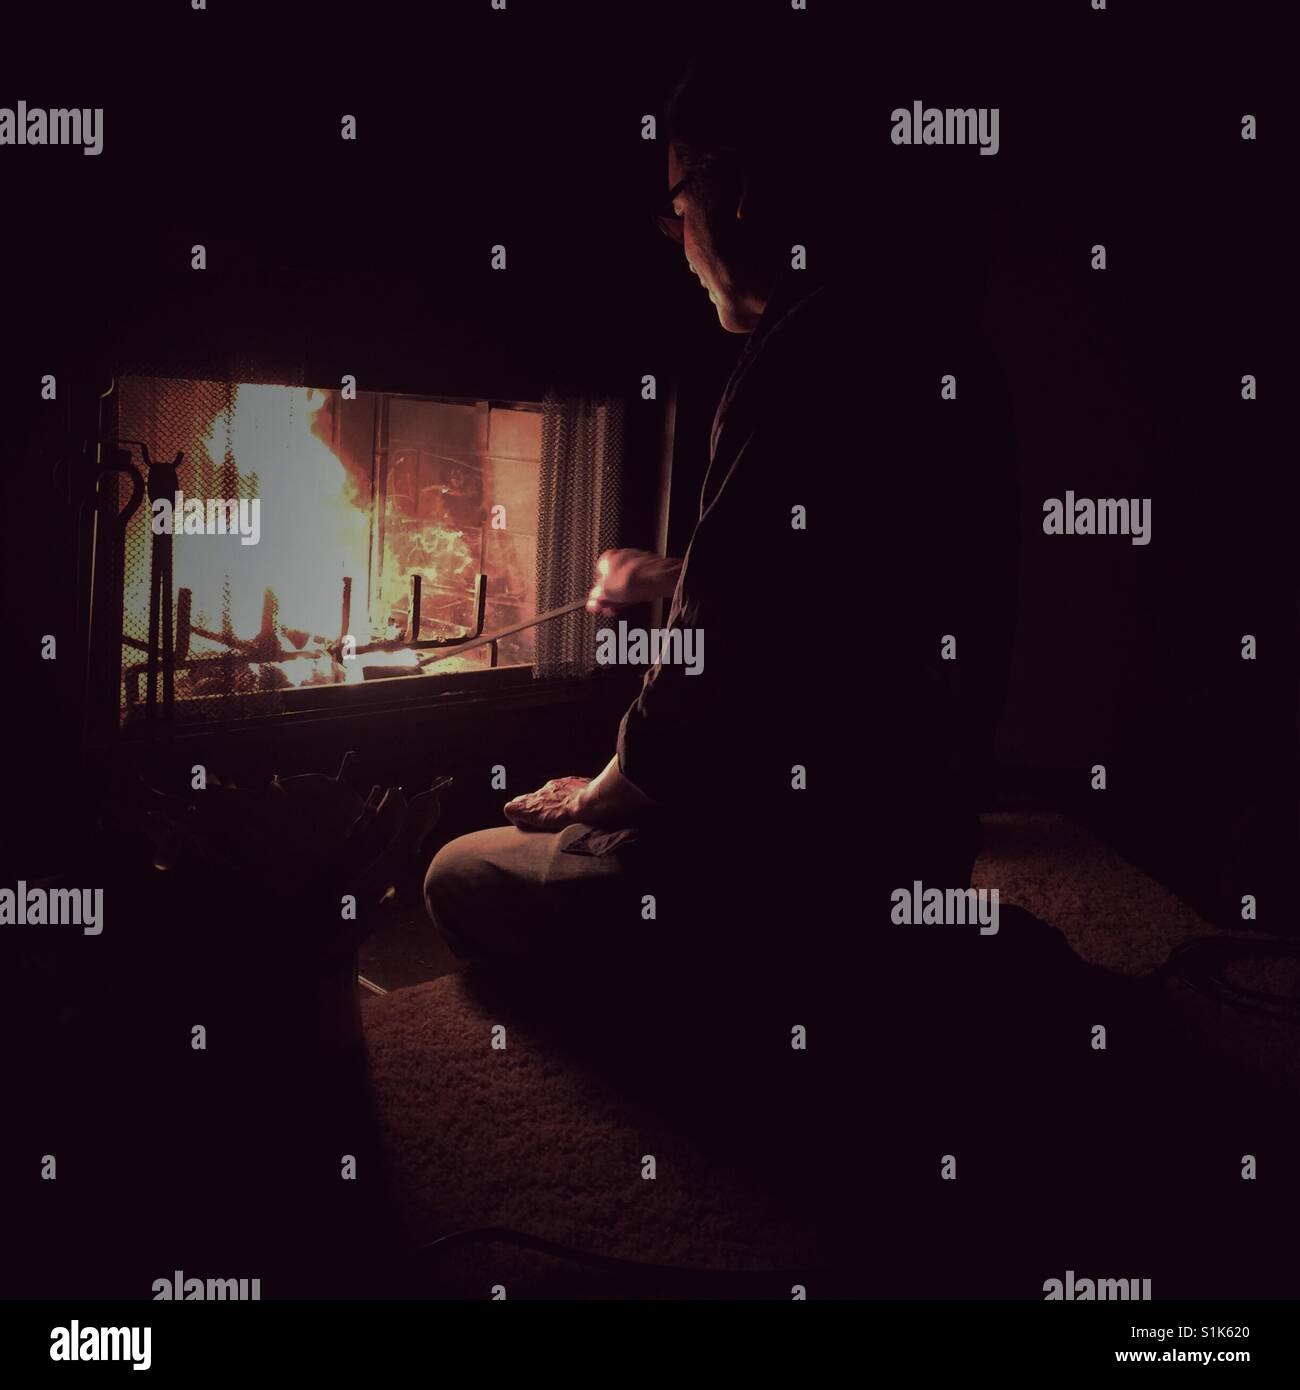 Fireplace evening - Stock Image